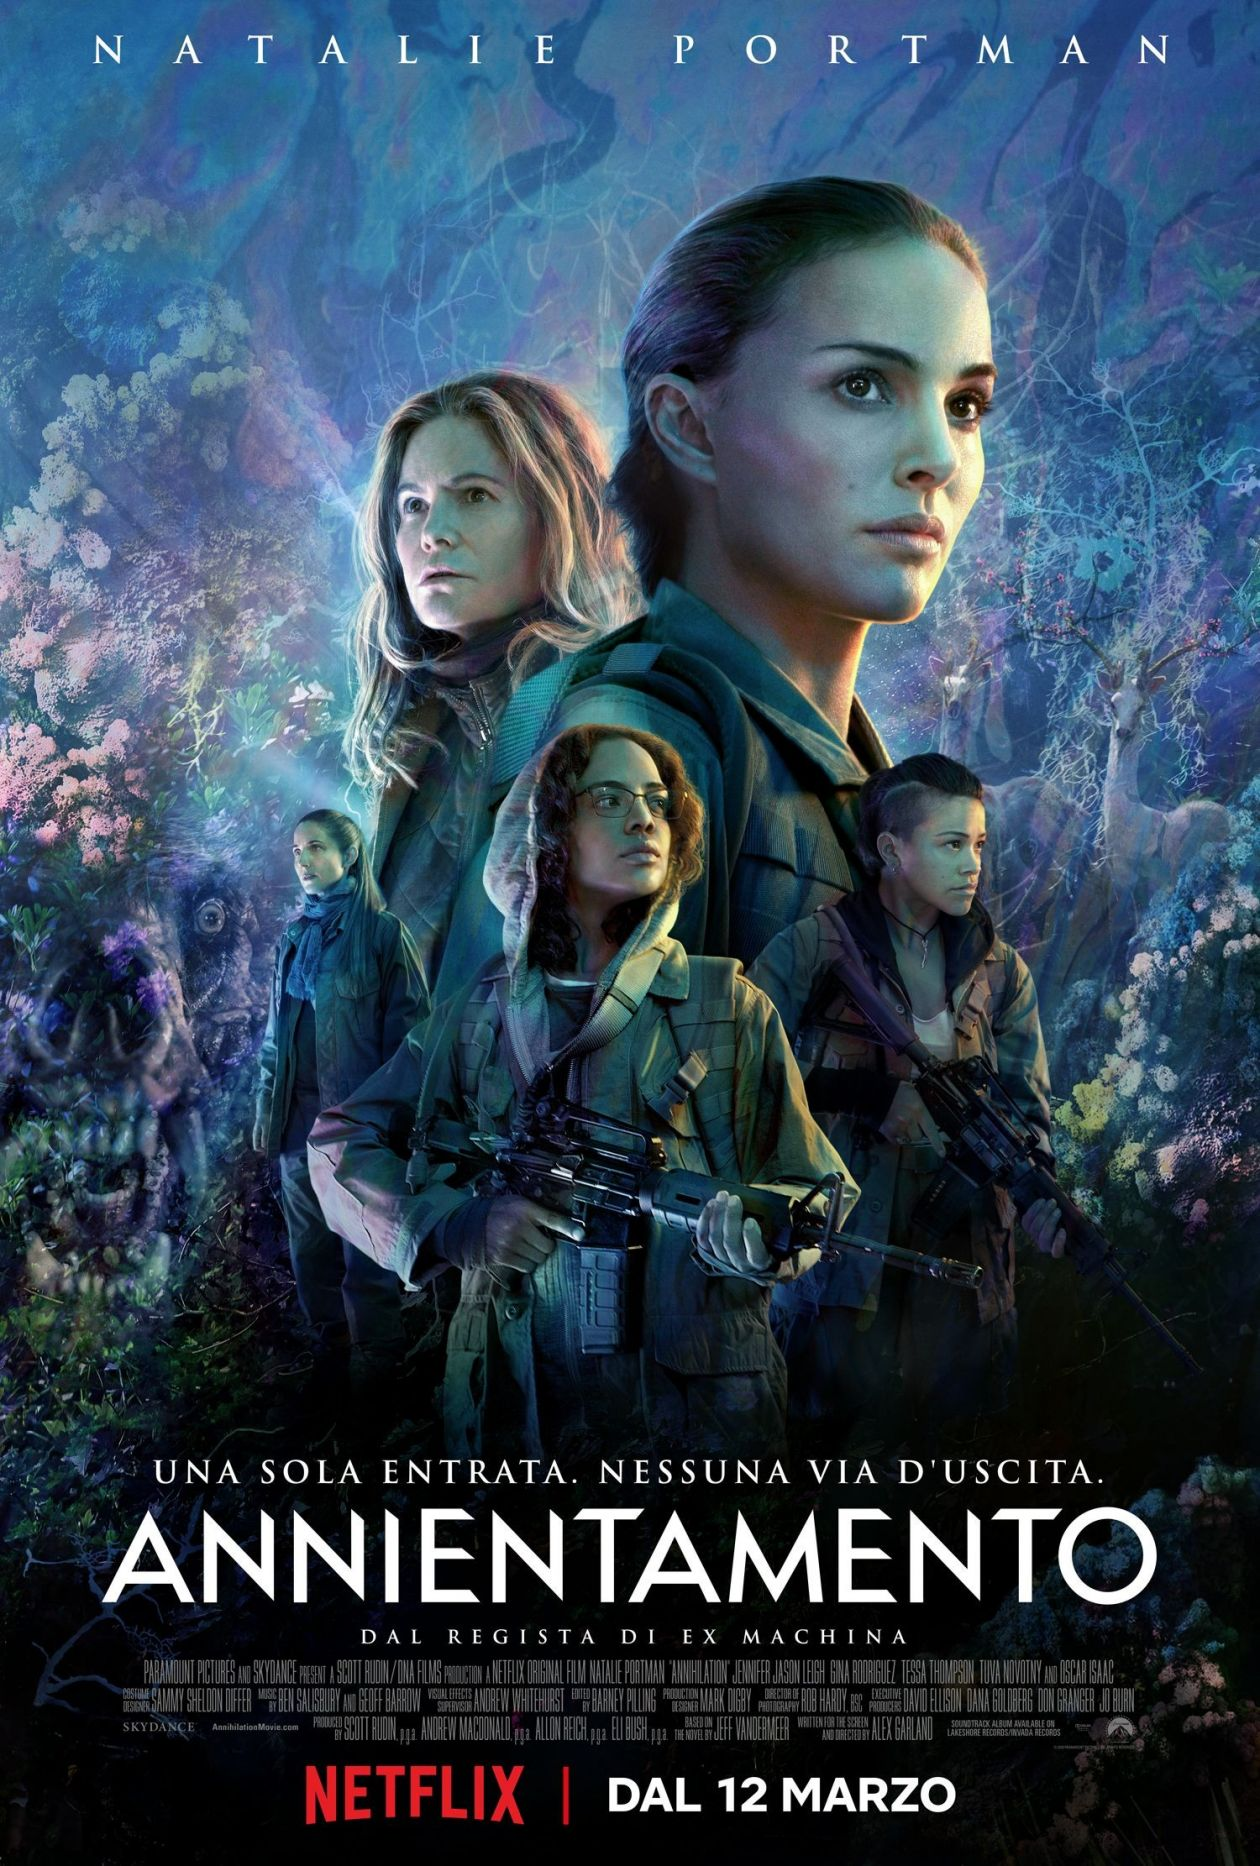 Natalie Portman / Annihilation / Alex Garland 2018 / Movie Poster / Affiche film NETFLIX